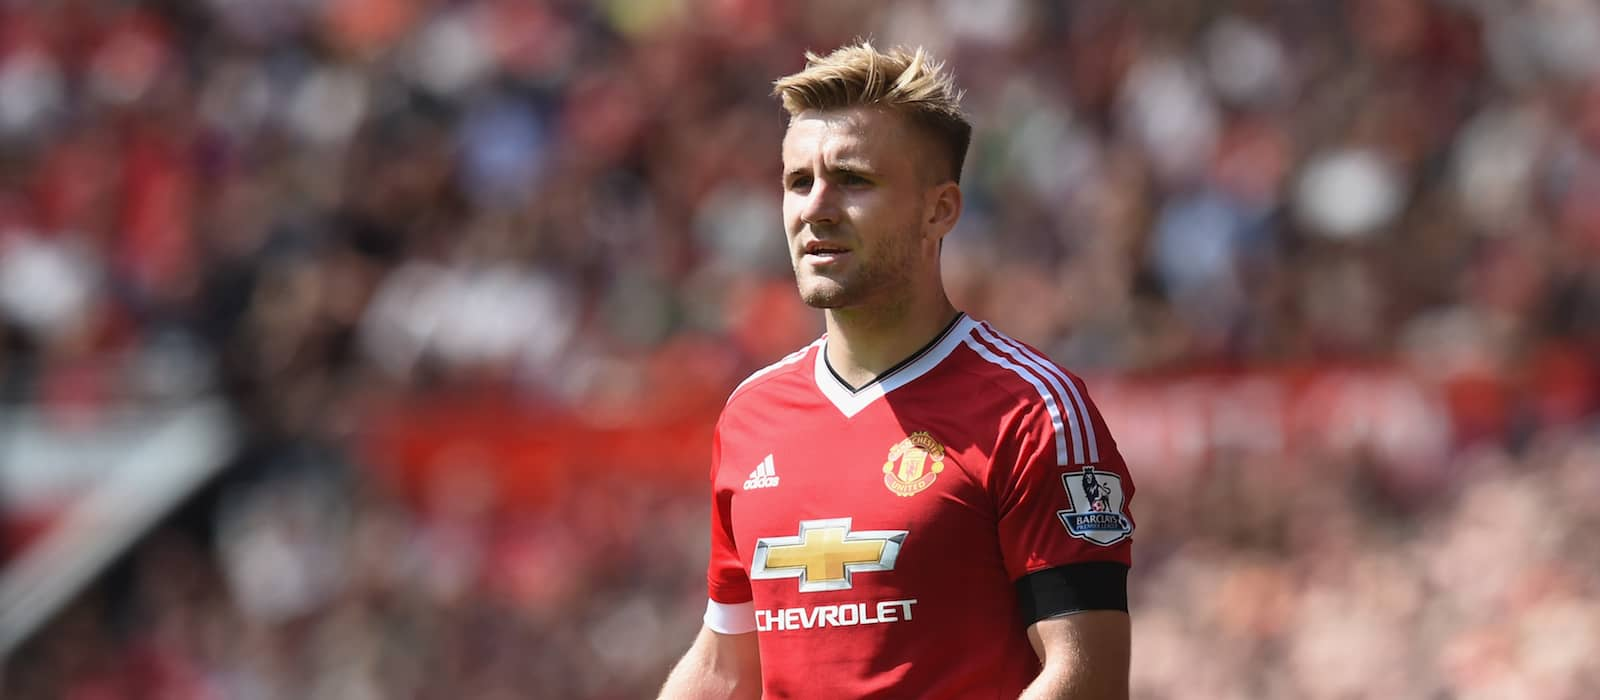 Manchester United news round-up including Mourinho, Shaw and David de Gea